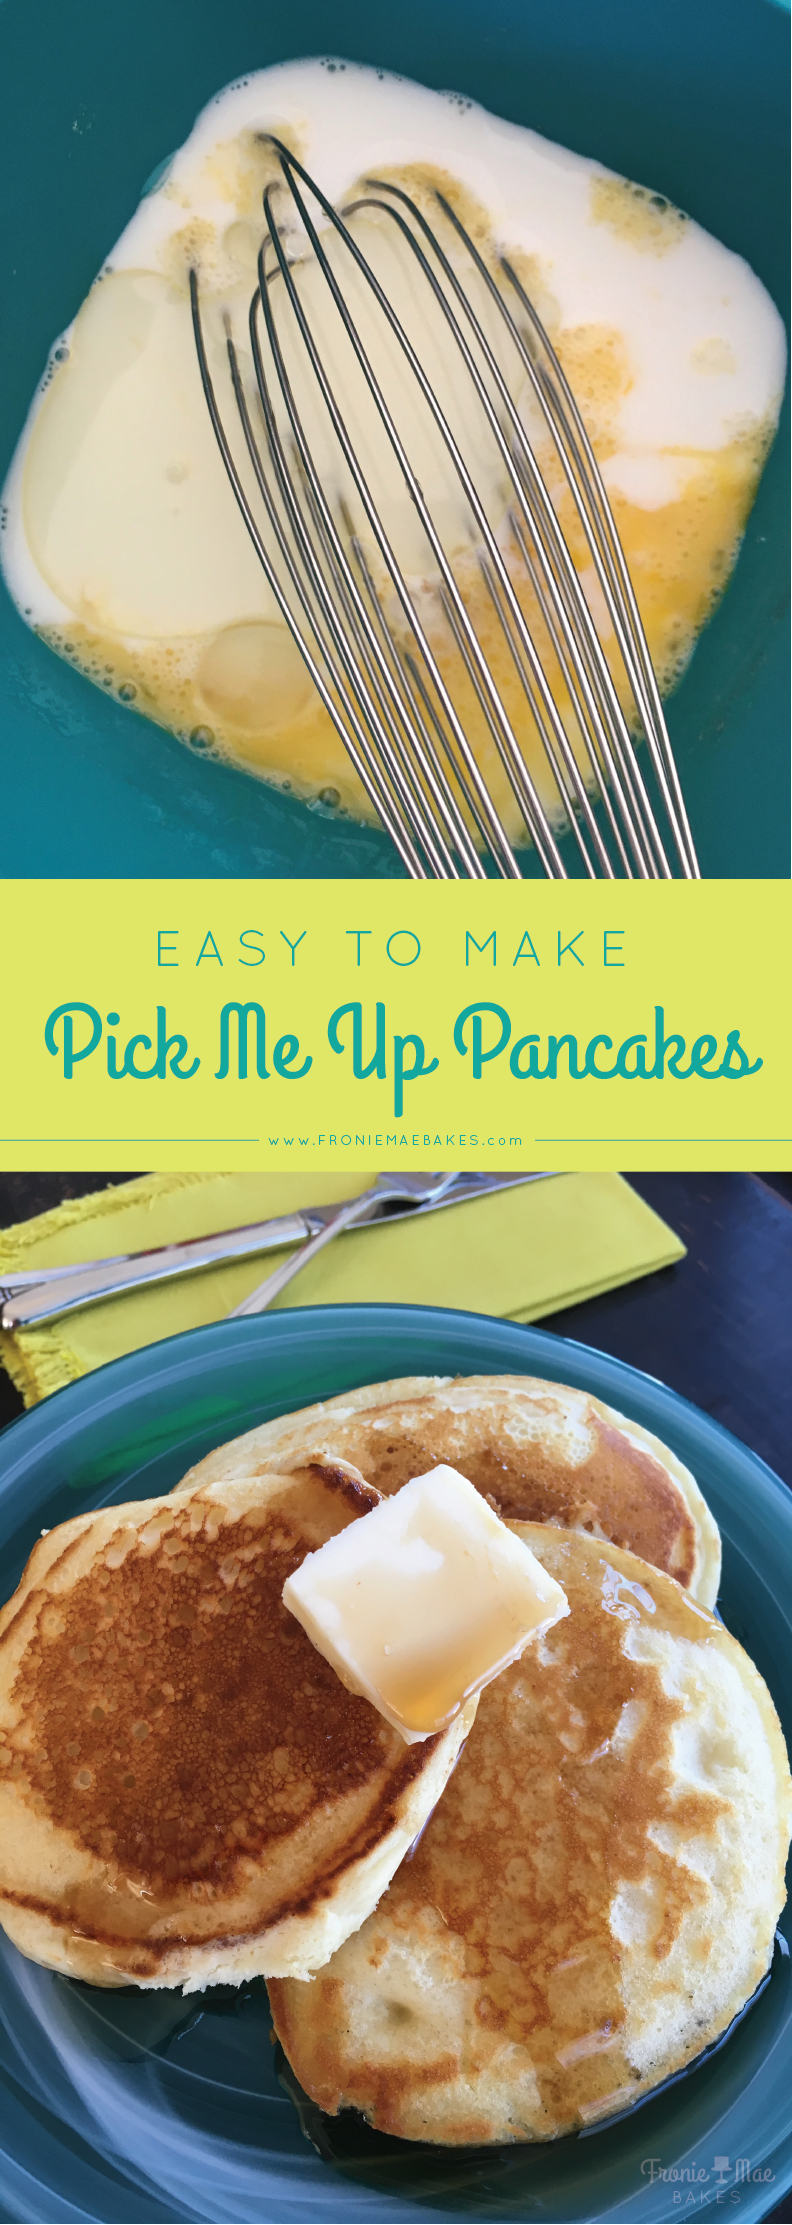 Delicious and easy to make Pick Me Up Pancakes by Fronie Mae Bakes. www.froniemaebakes.com